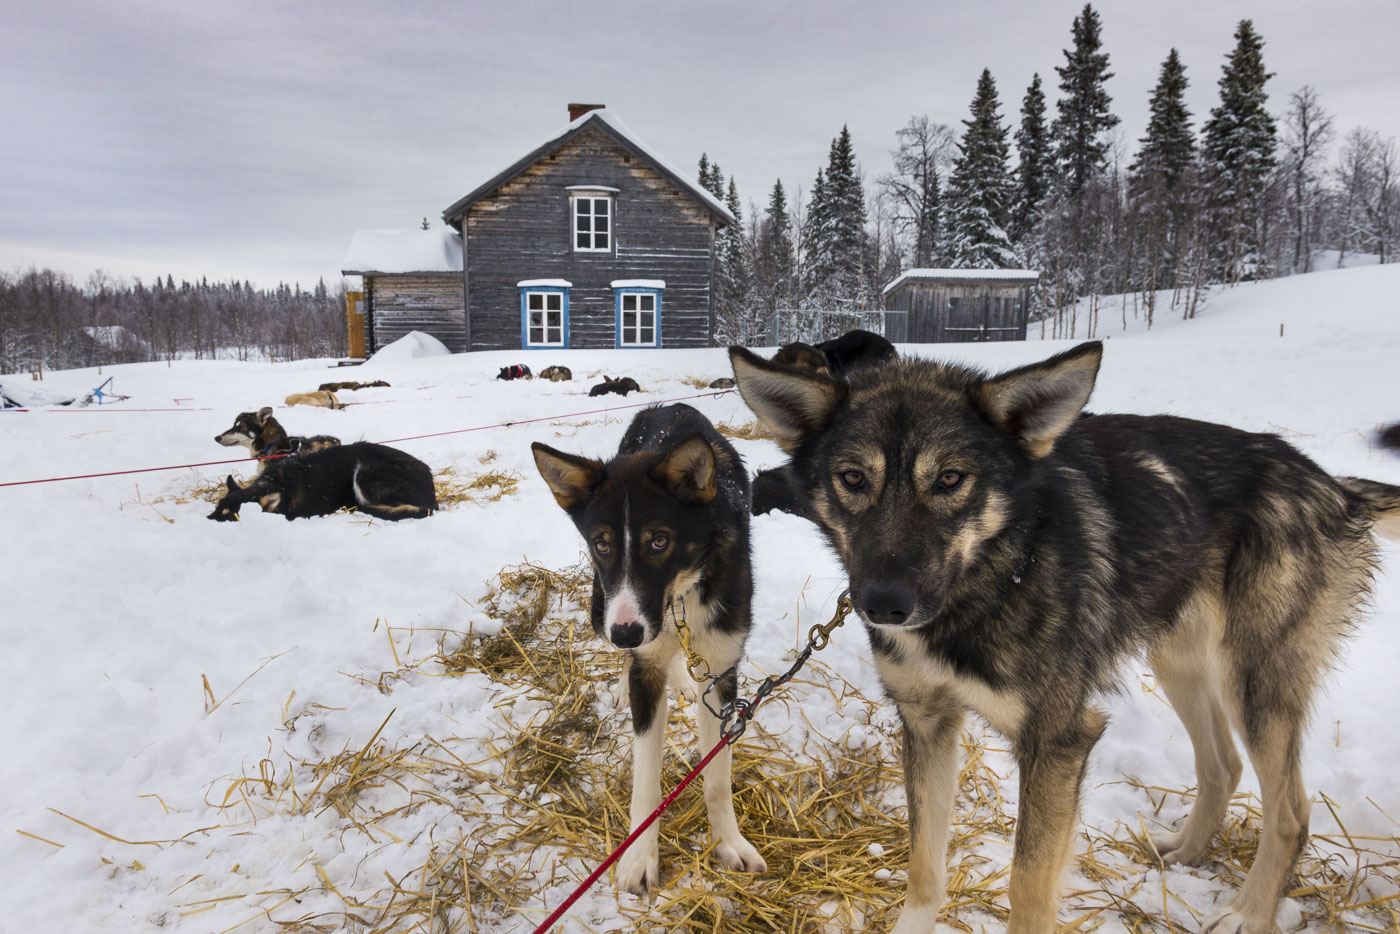 Dog teams on a tour group rest on the hay in the morning at a remote dry cabin in the Vindelfjallen Nature Preserve.